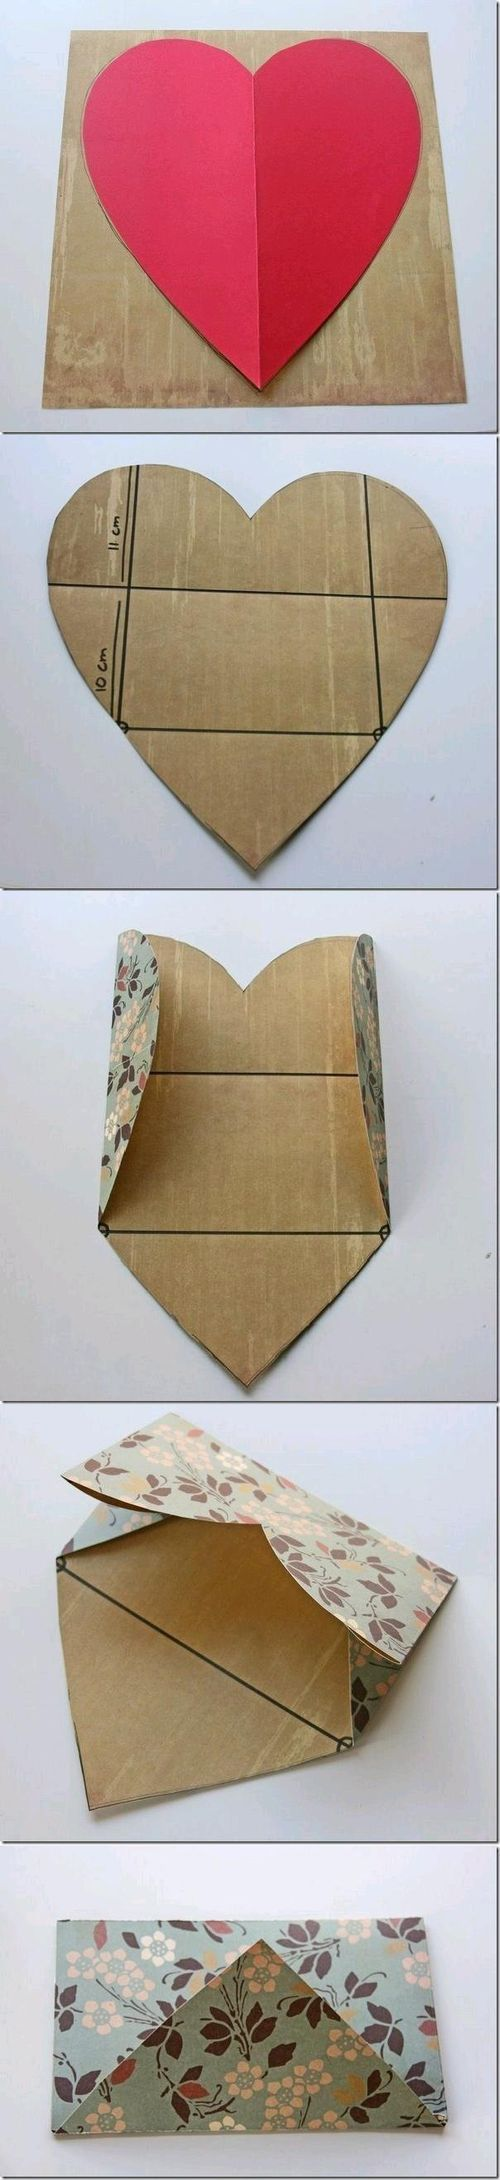 Heart Envelope - Nice gift topper